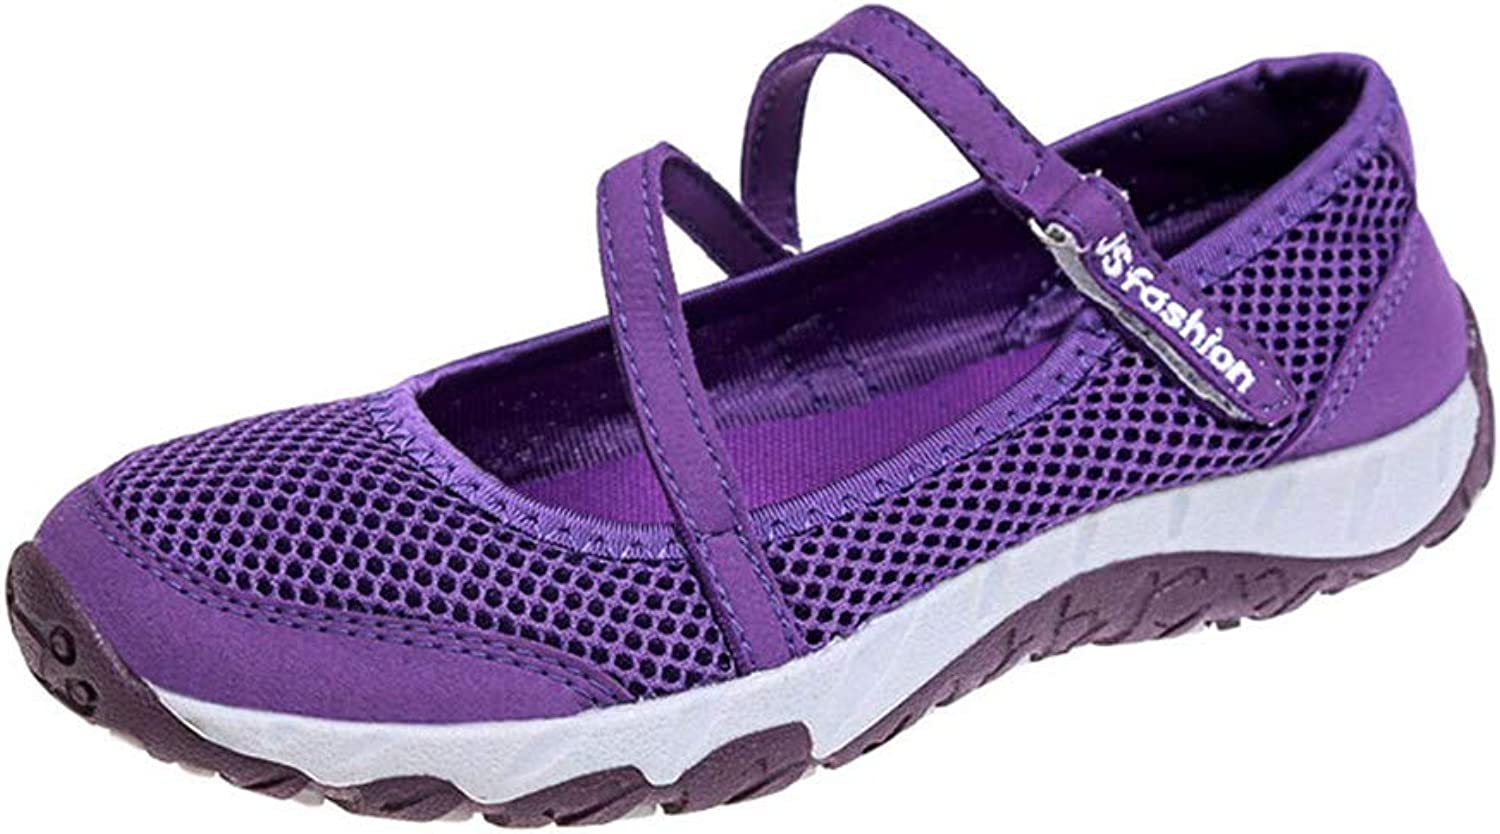 2019 New Flat shoes Women Air Mesh Breathable Ladies Mary Jane Sneakers Fashion Female Purple Pink Flats Boat shoes